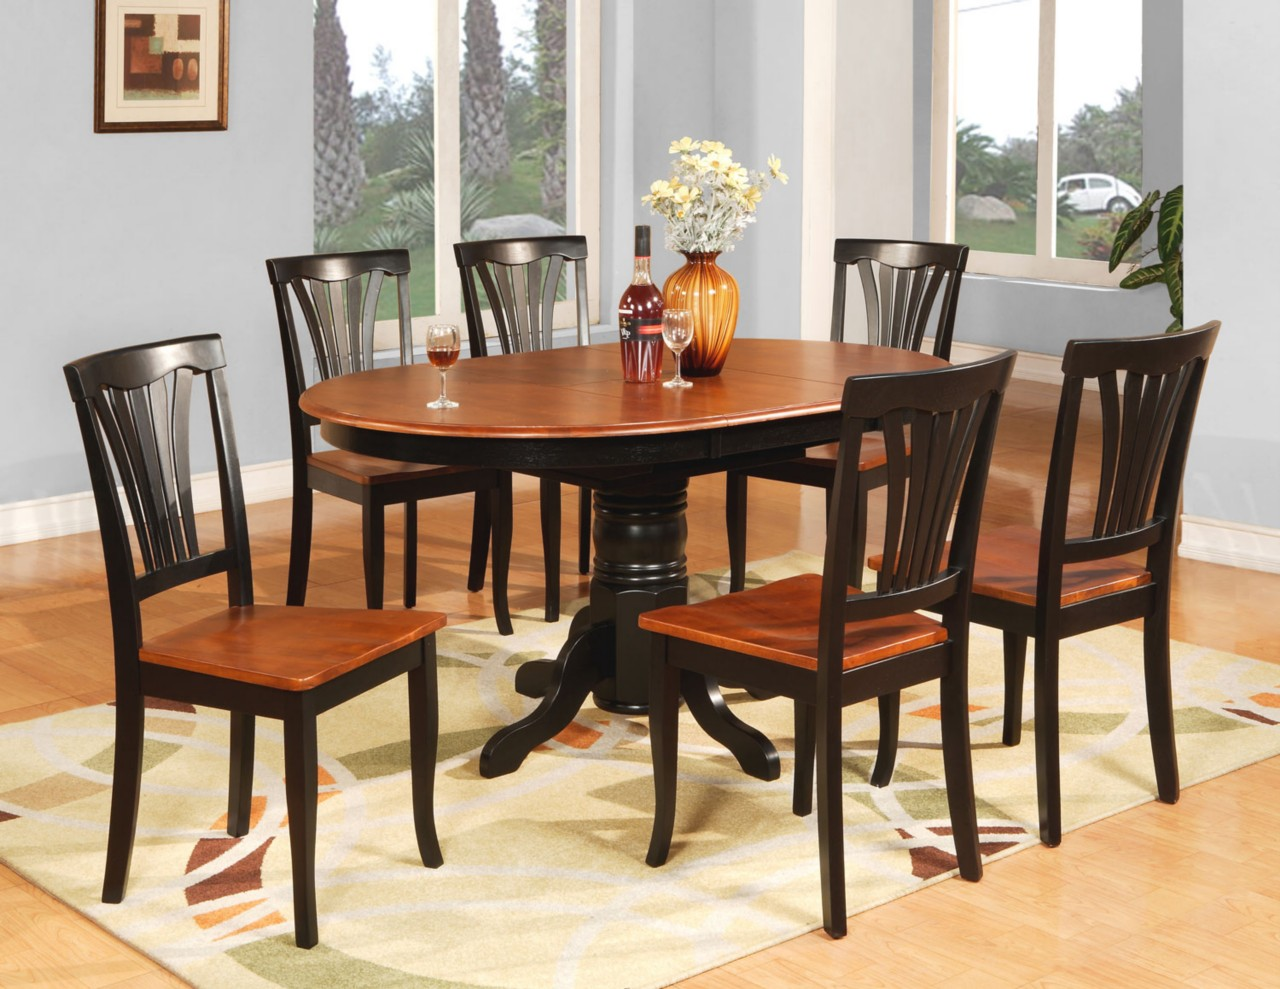 Designer Tische Esszimmer 7 Pc Oval Dinette Kitchen Dining Room Table And 6 Chairs Ebay